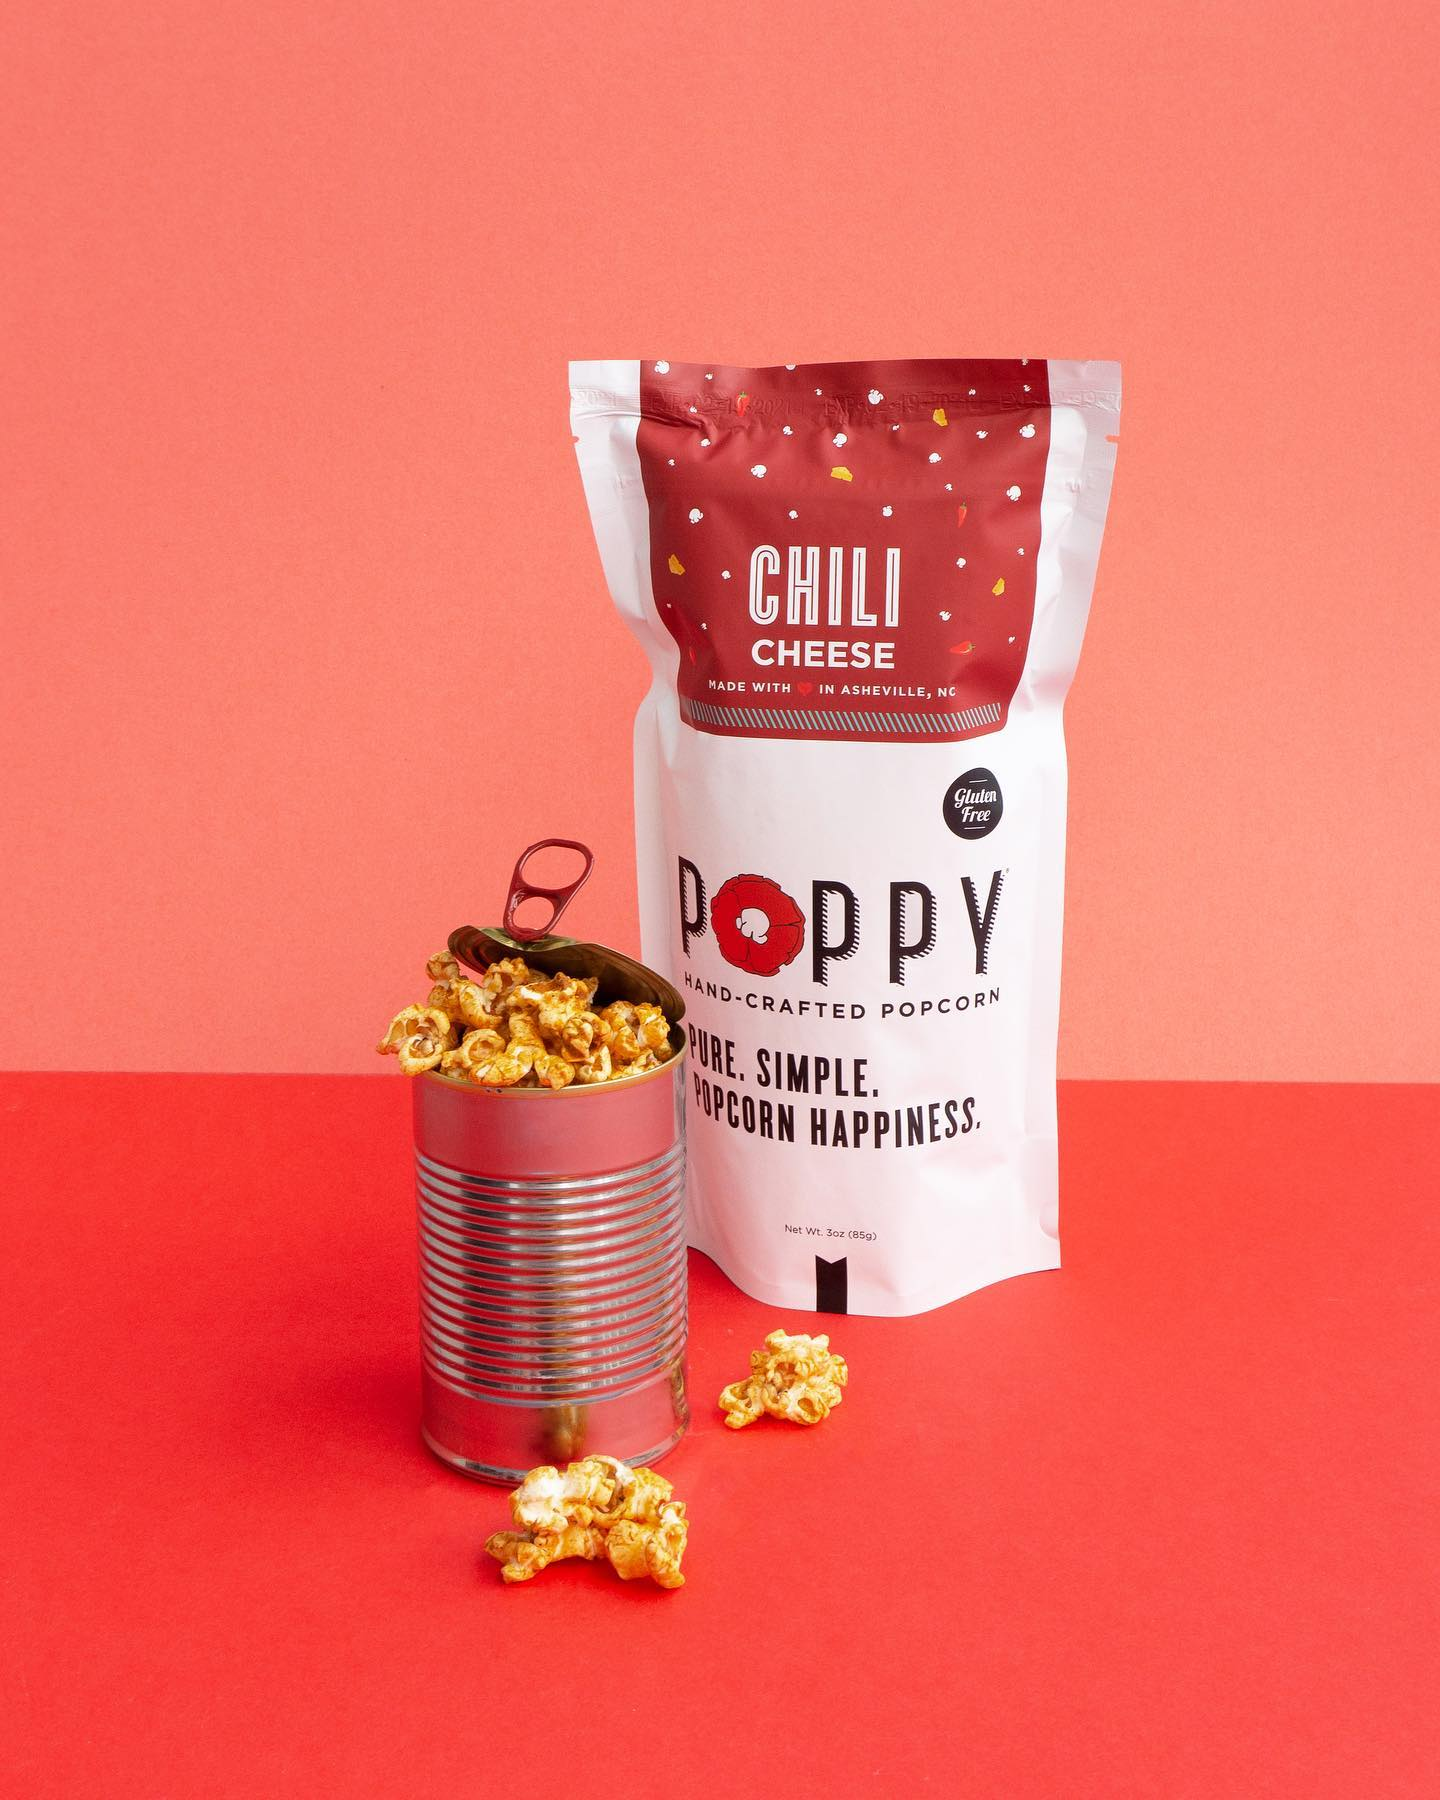 POPPY HAND-CRAFTED POPCORN - CHILI CHEESE MARKET BAG